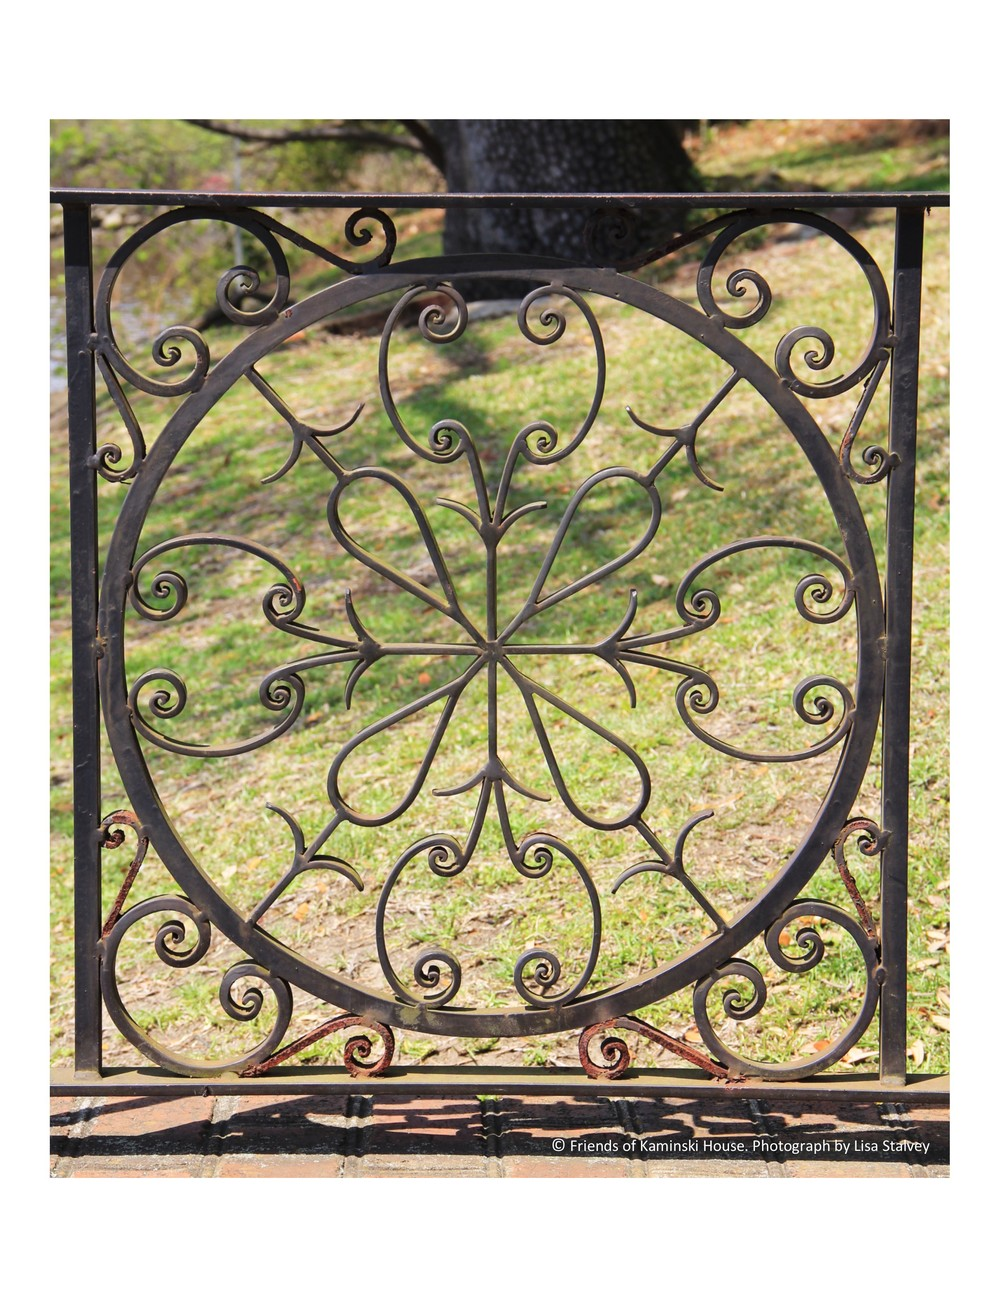 Unique iron work